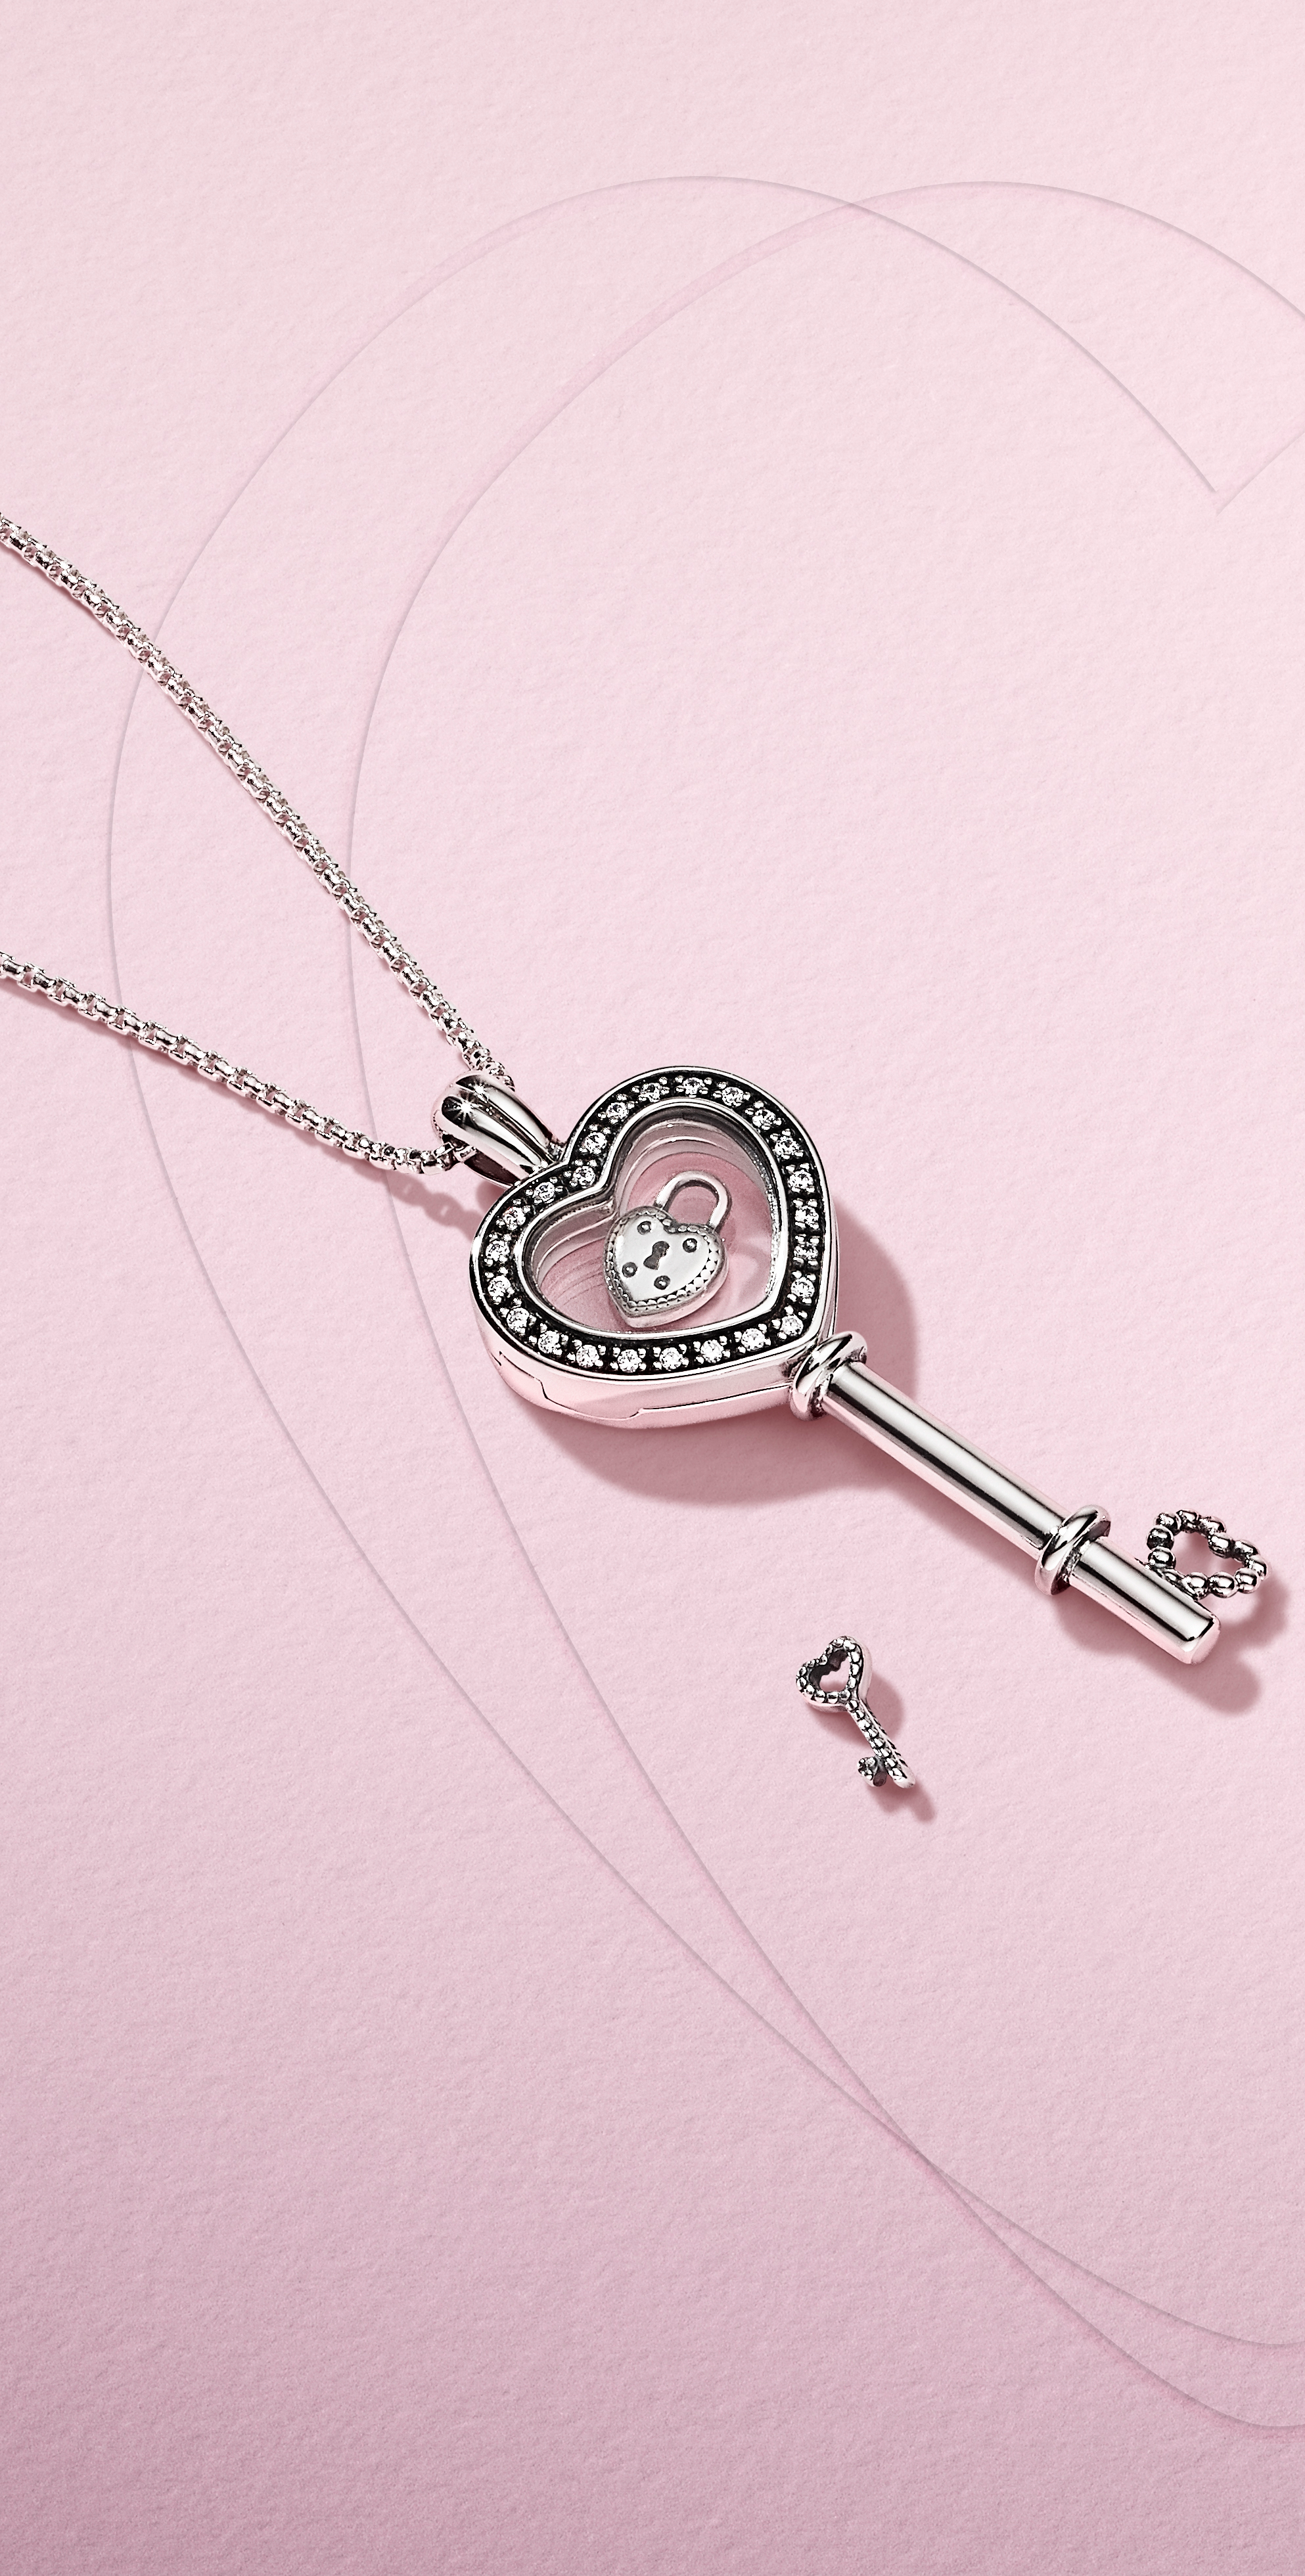 1de004653 ... and open your heart with our new Valentine's Day collection, now  available in stores and online. This new, sparkling floating locket in sterling  silver ...